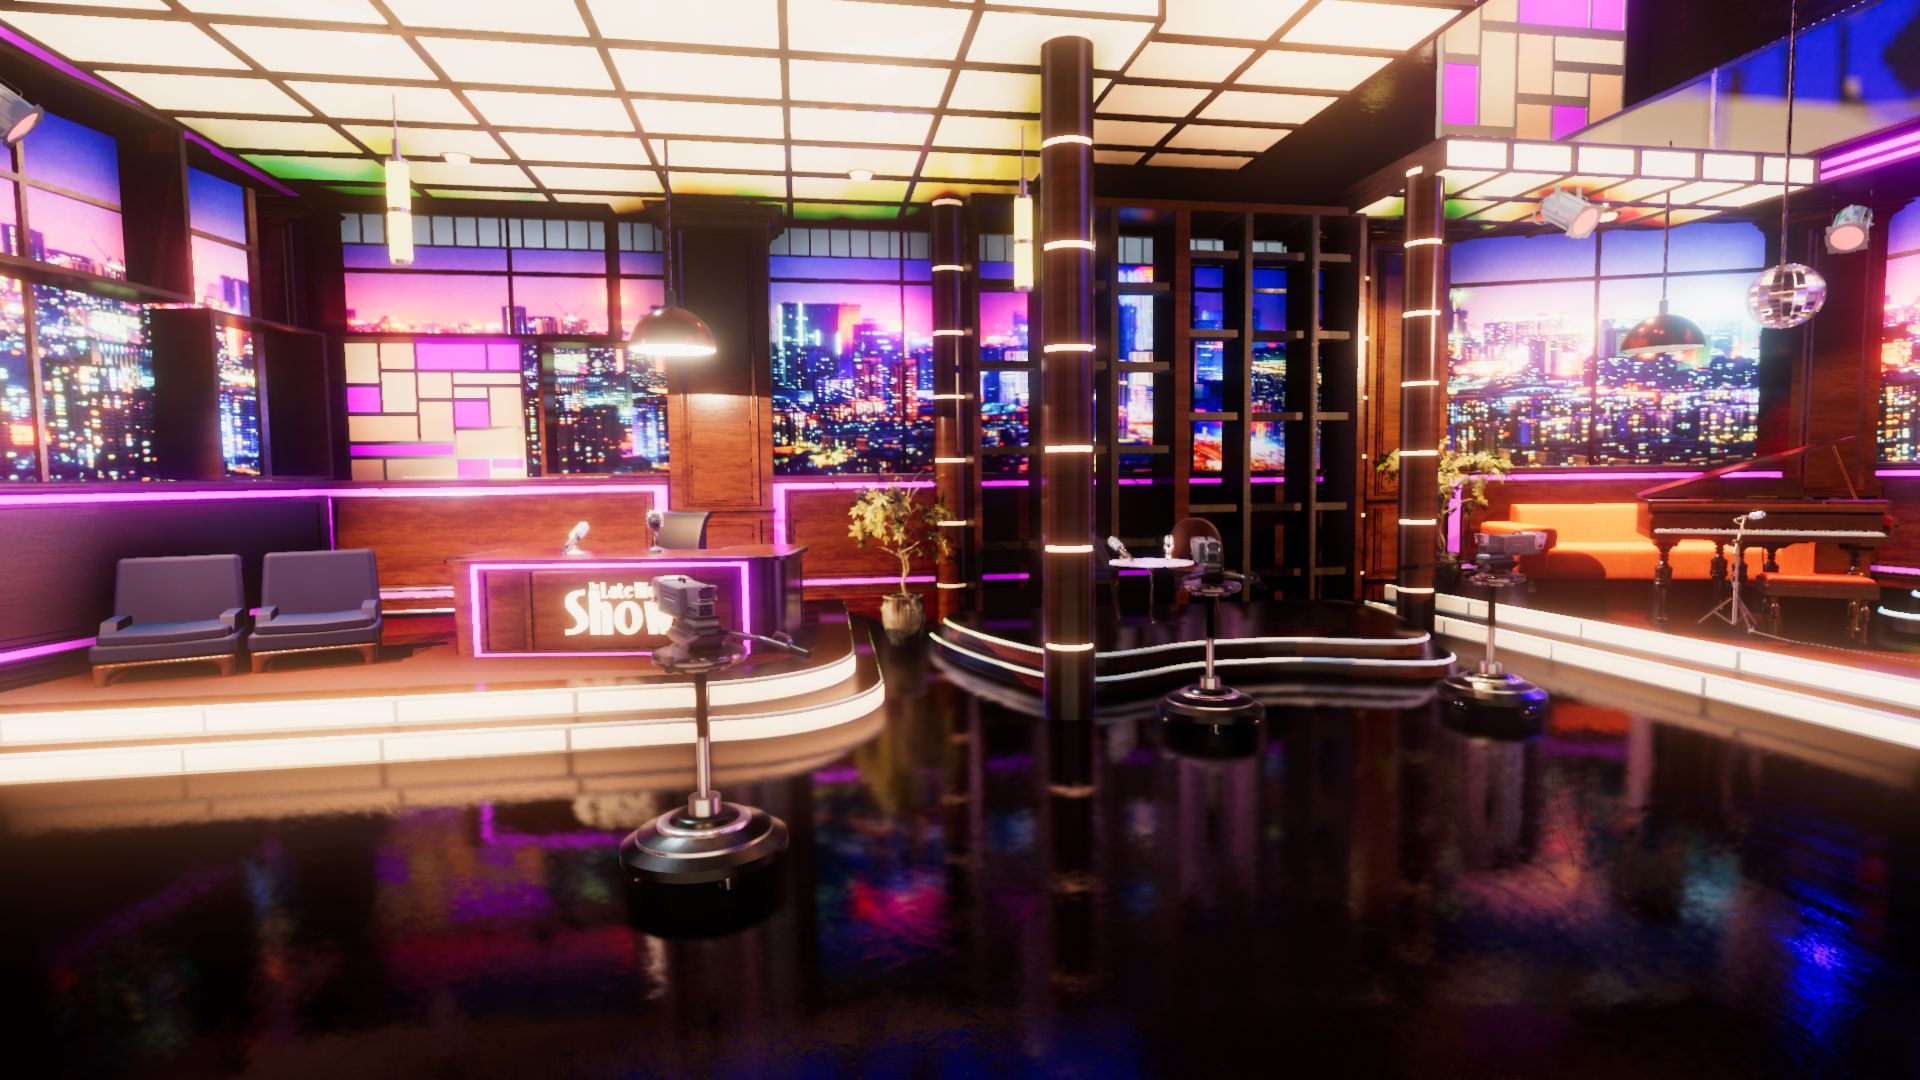 An image showing Late Night Show asset pack, created with Unity Engine.